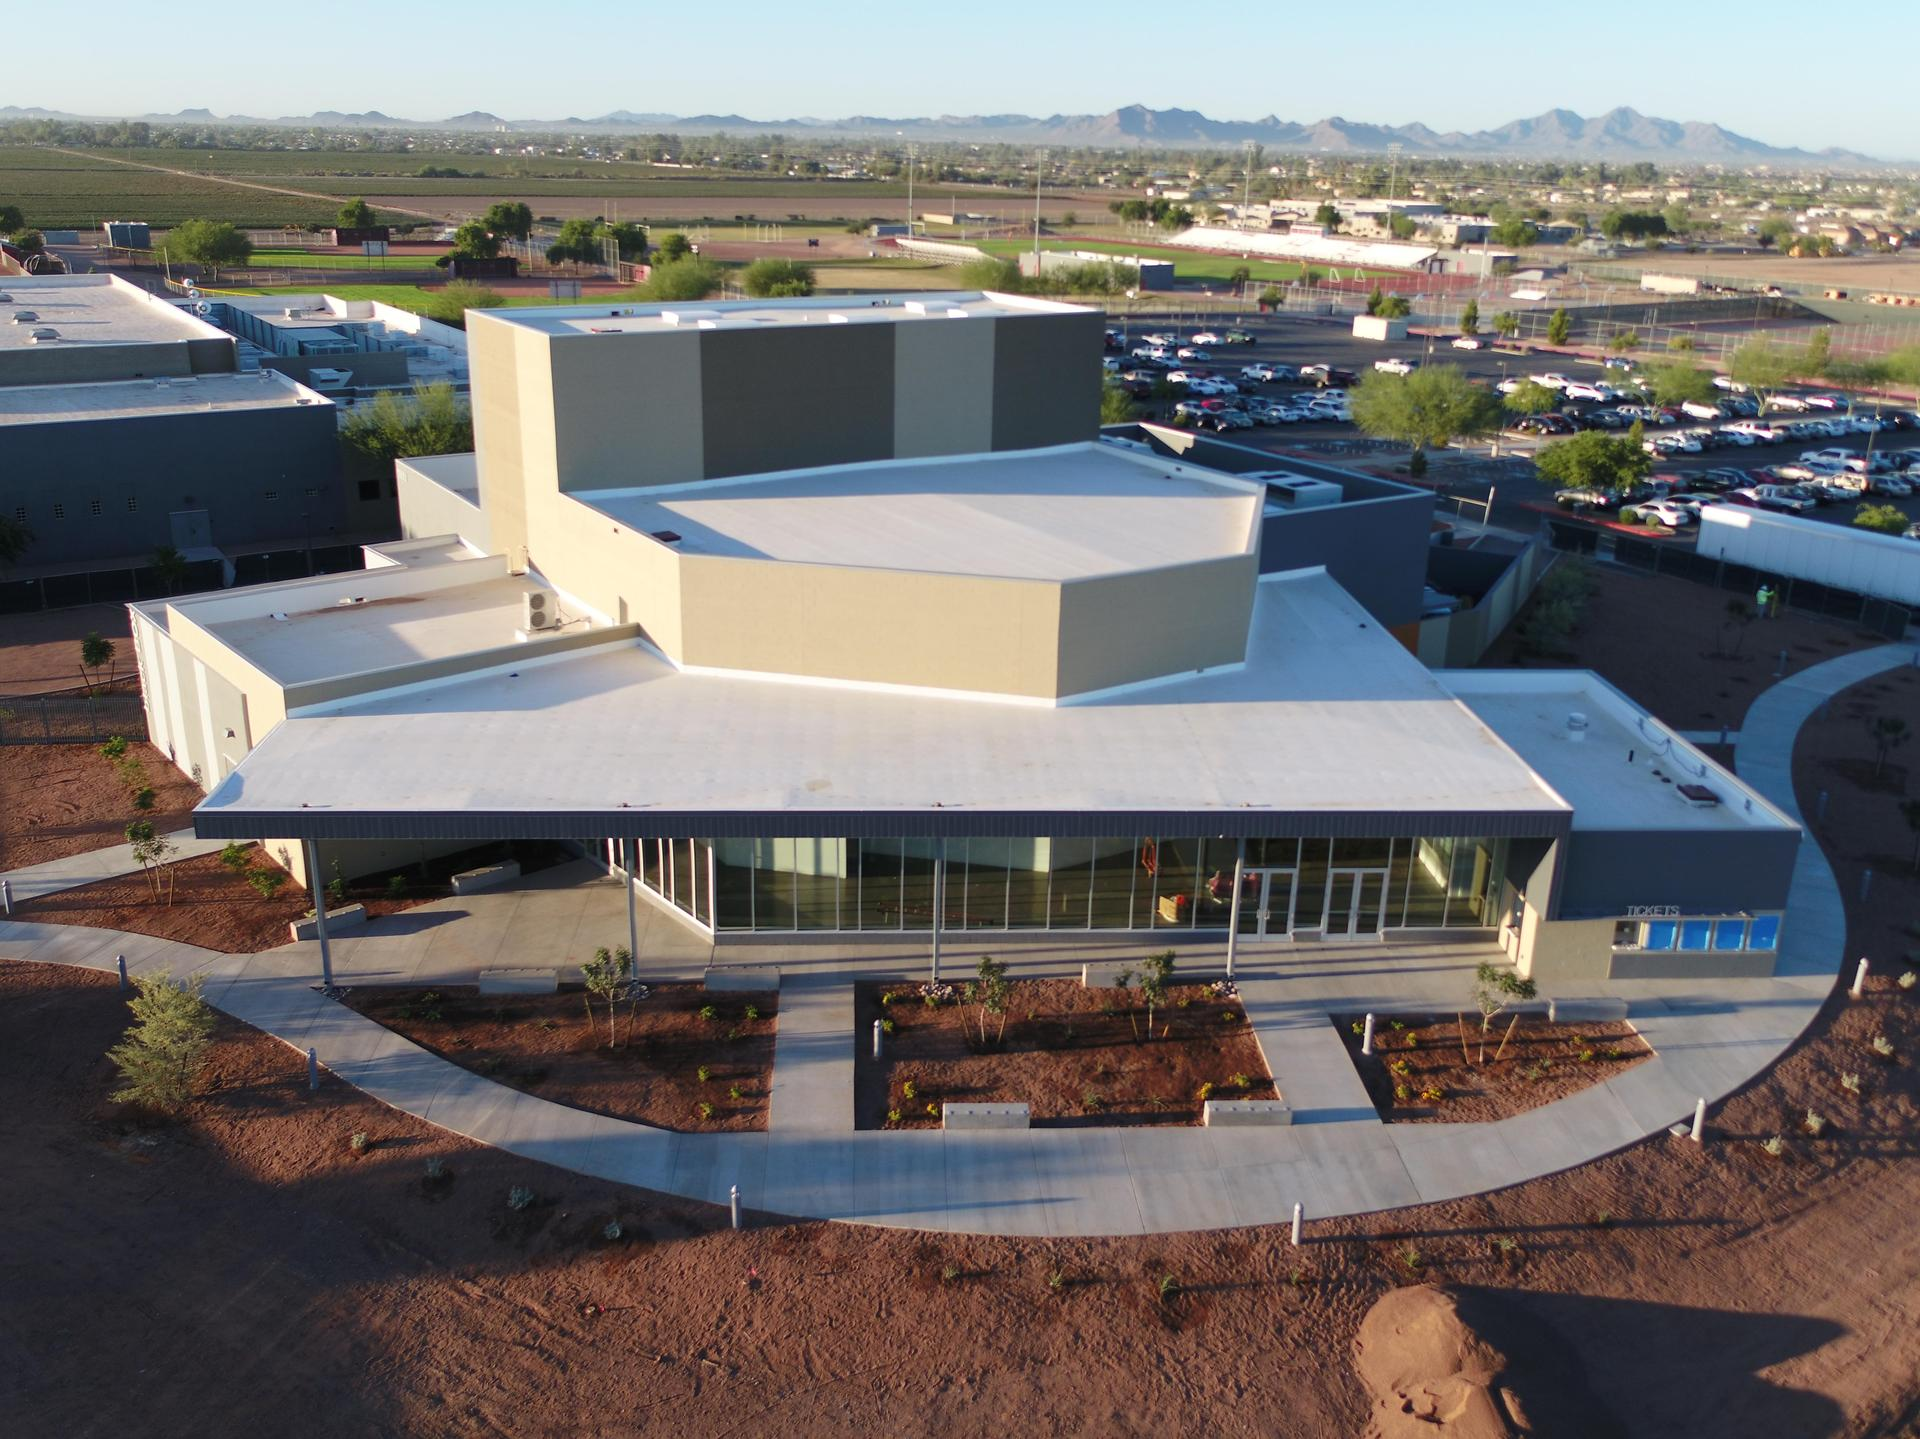 Combs Performing Arts Center aerial view